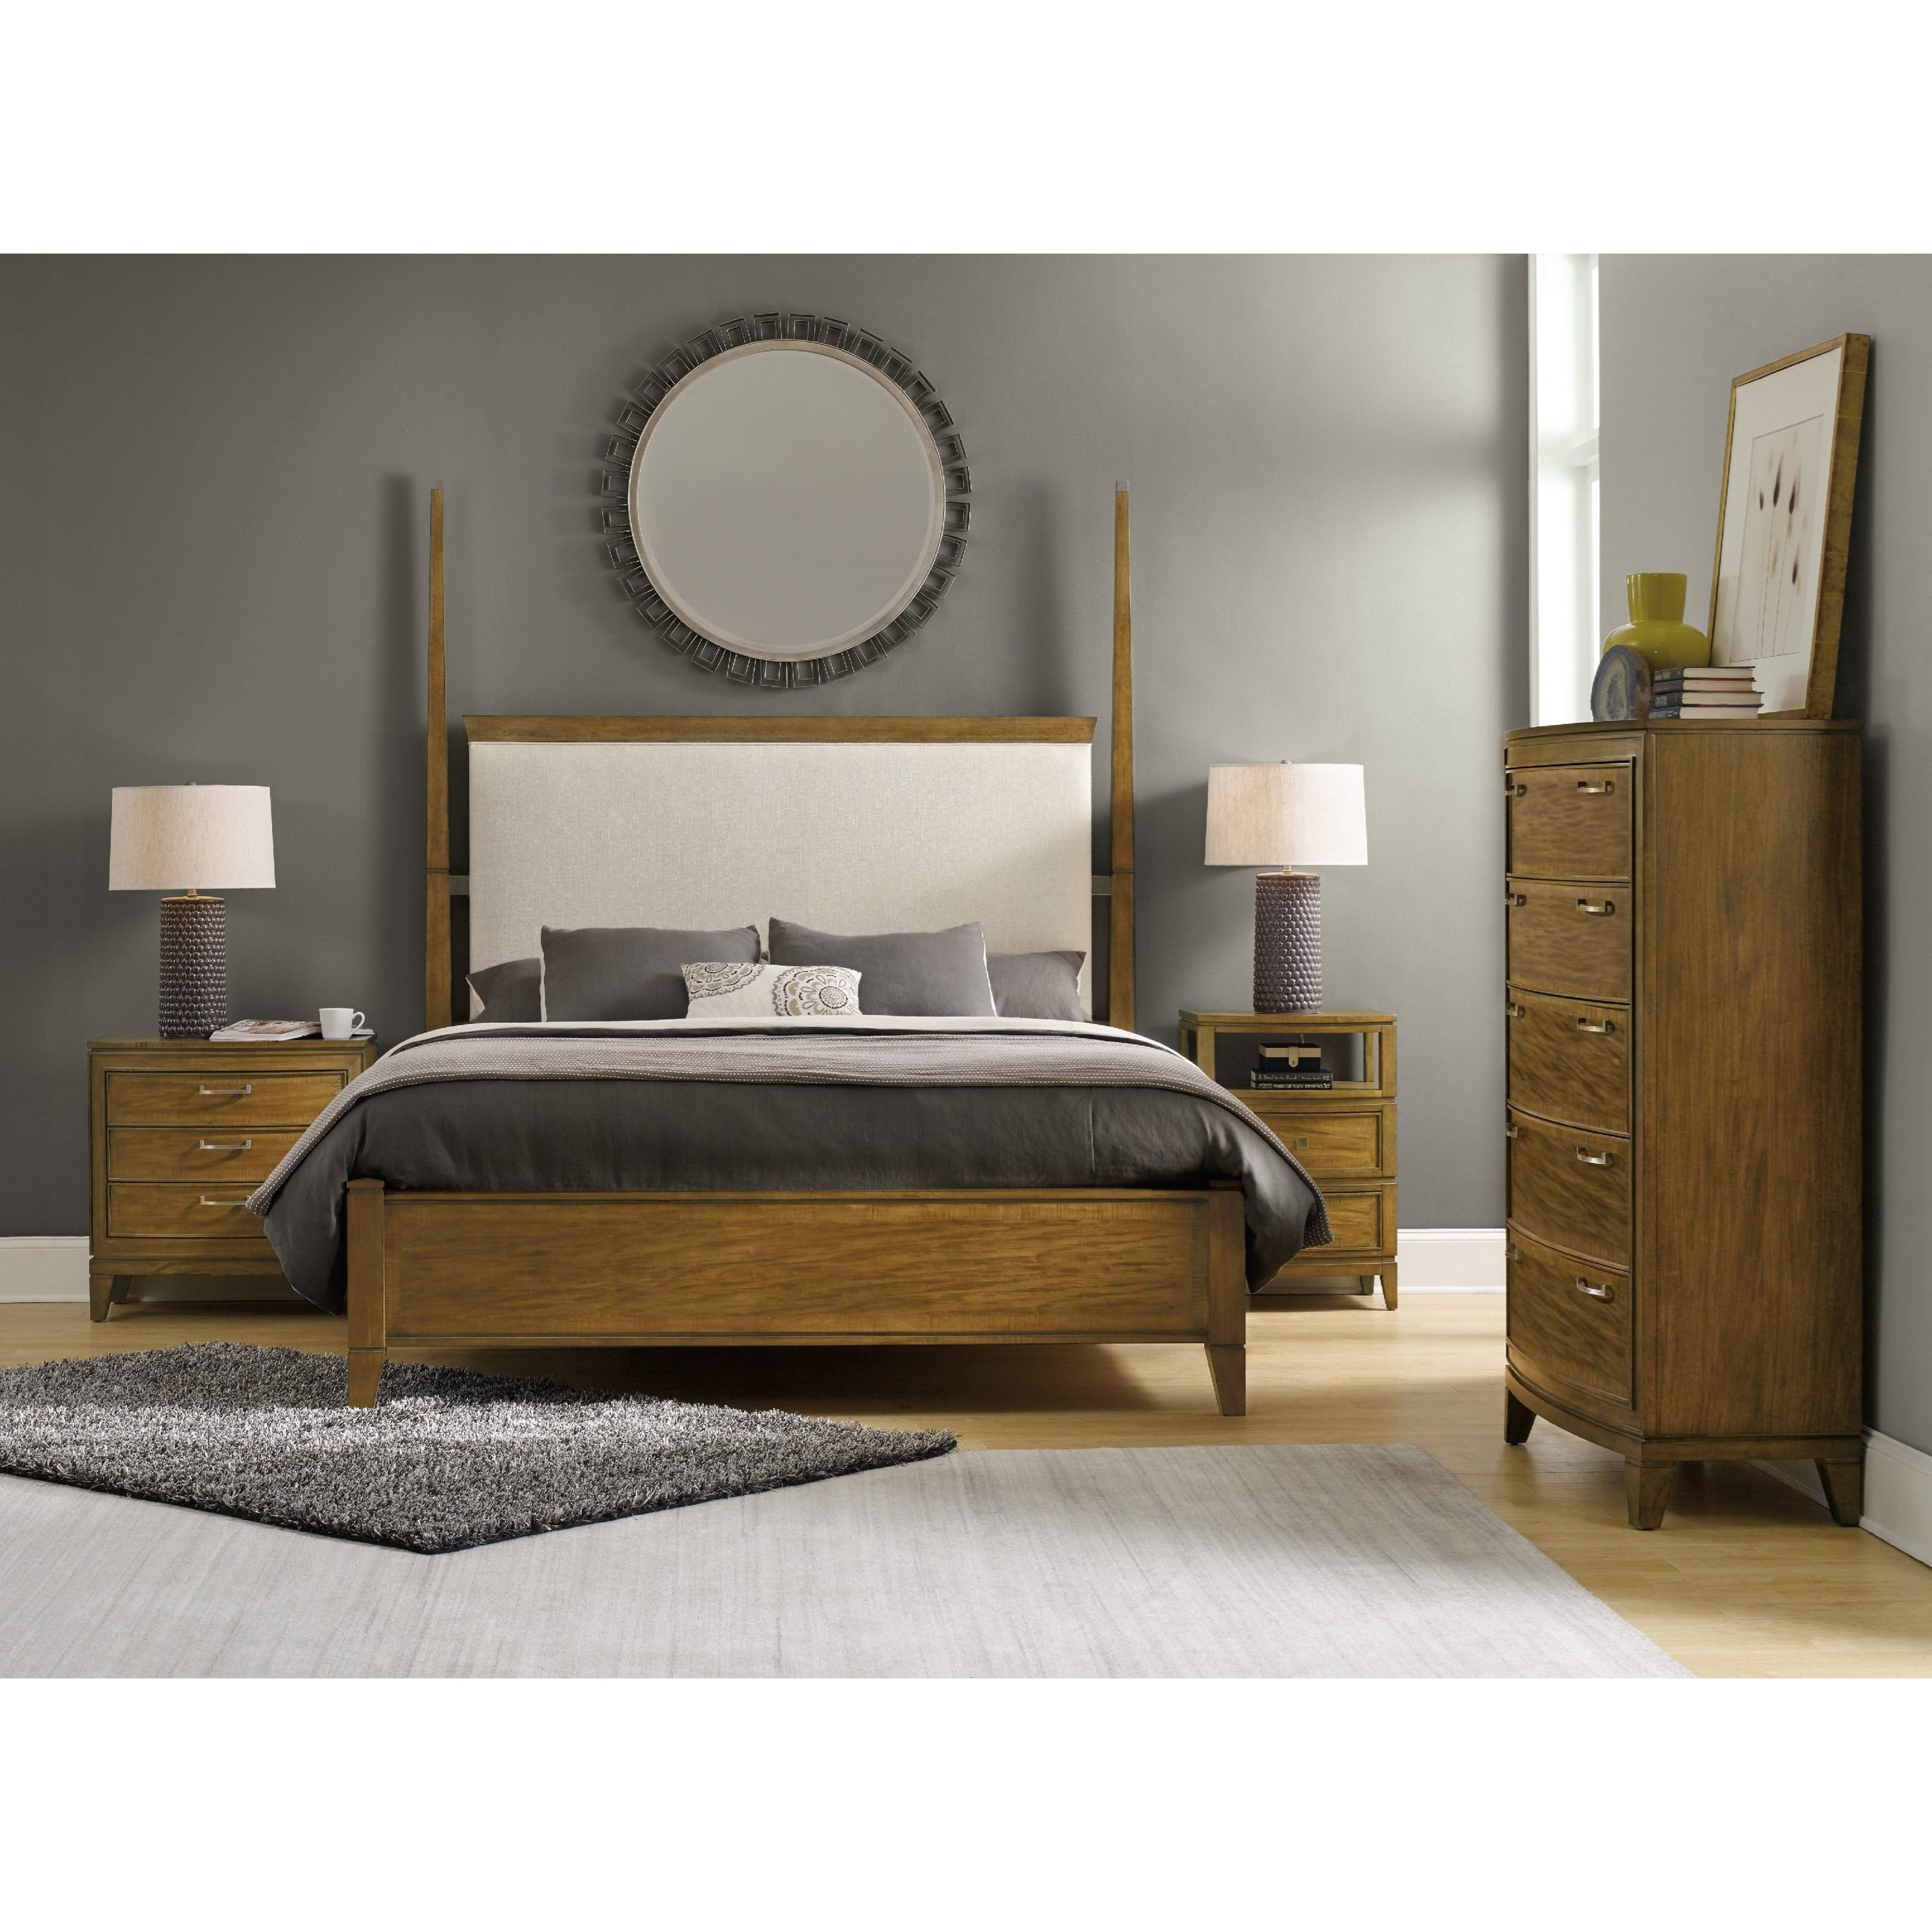 Hooker Furniture Retropolitan King Bedroom Group - Item Number: 5510 K Bedroom Group 1